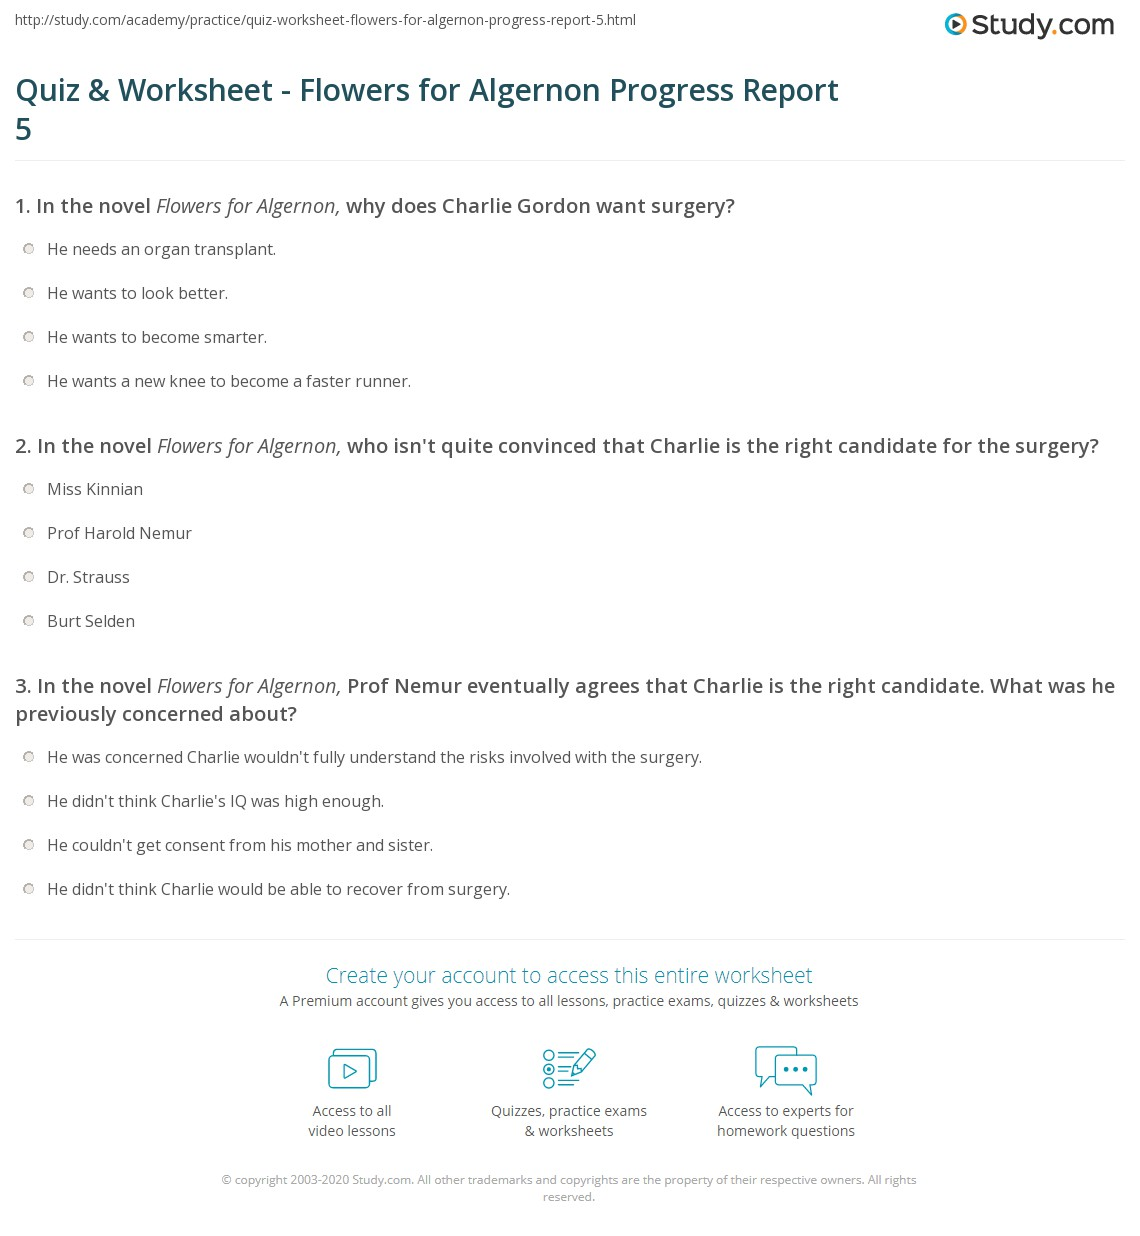 Worksheets Flowers For Algernon Worksheets quiz worksheet flowers for algernon progress report 5 study com print summary worksheet